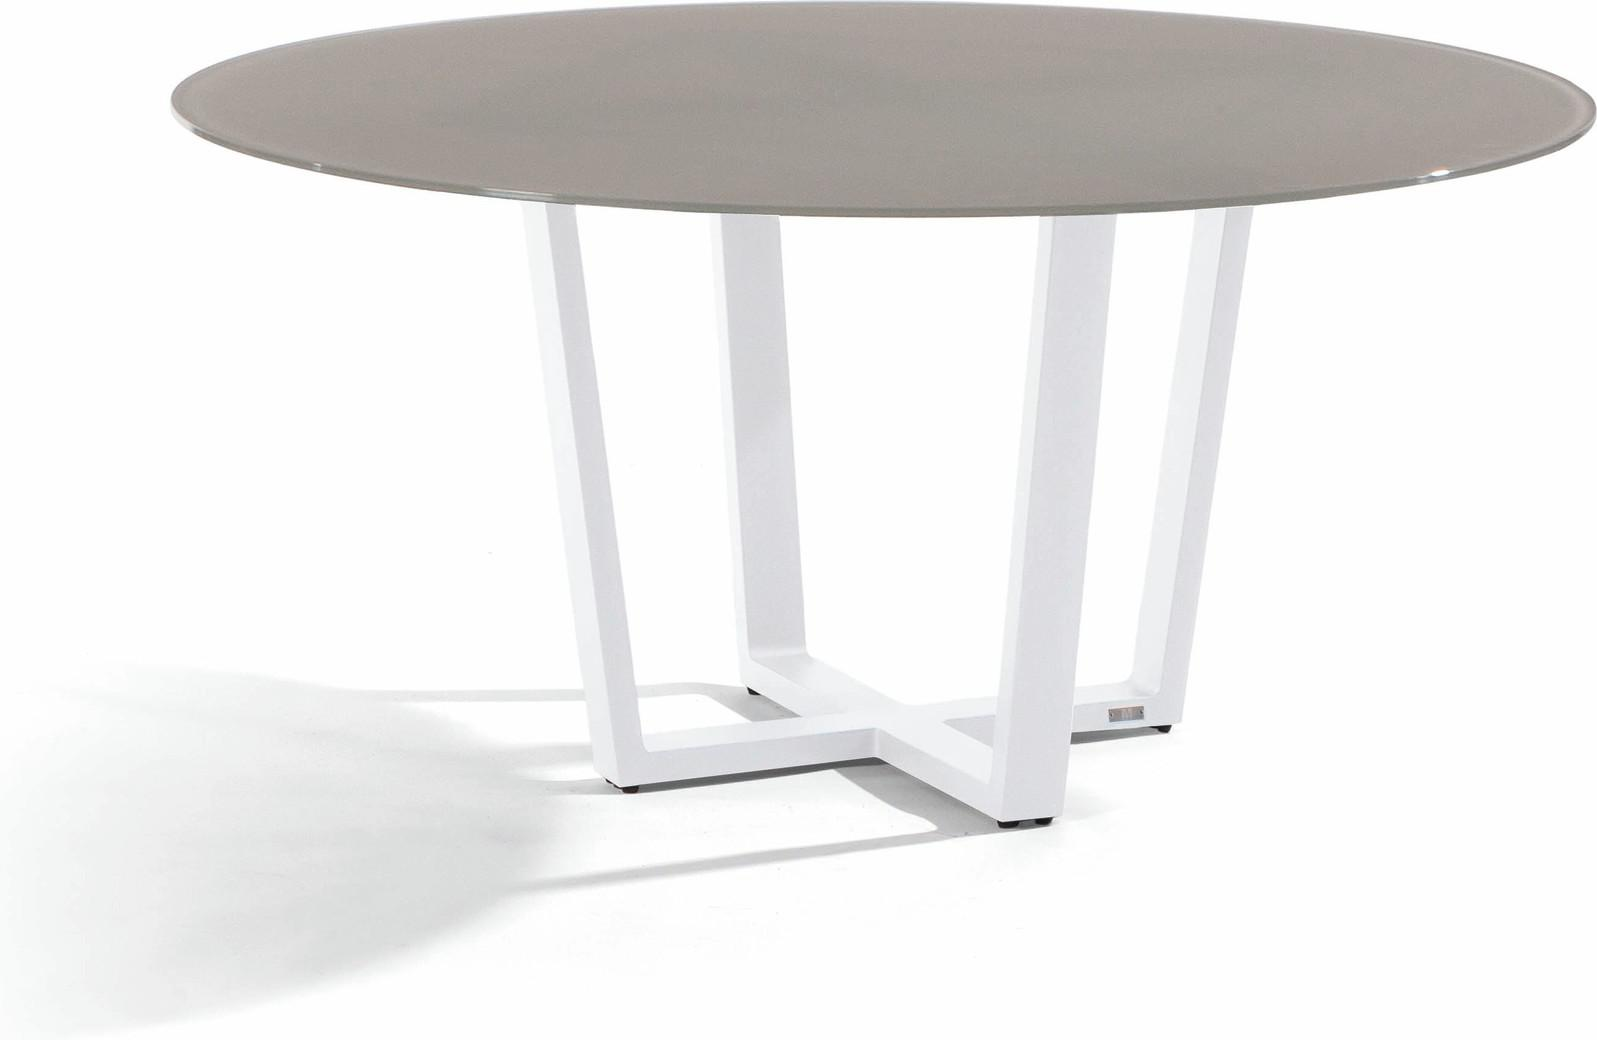 Table à manger Fuse - blanc - verre taupe 155